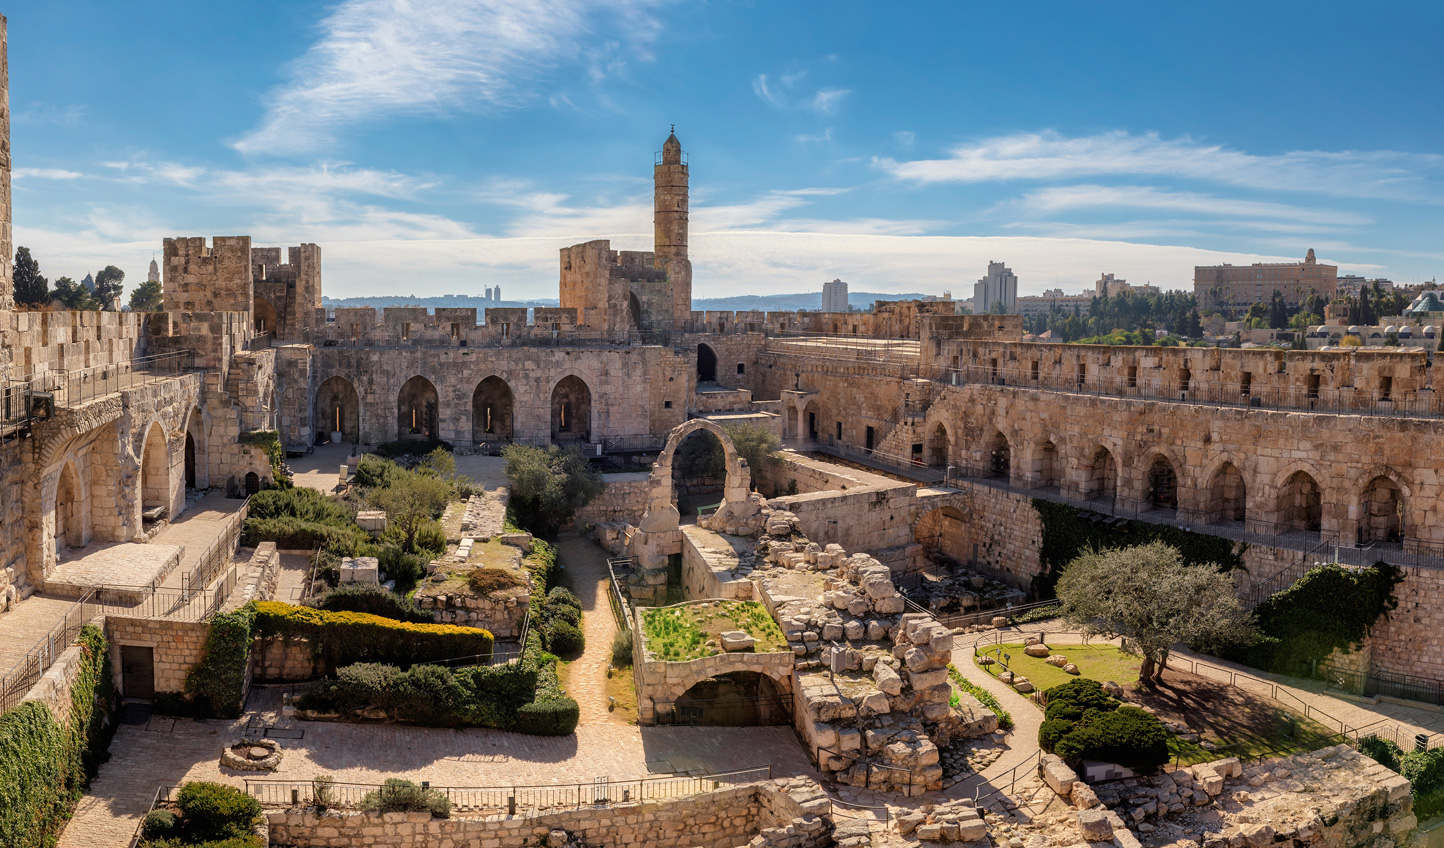 Experience the City of David, where kings and prophets once wandered